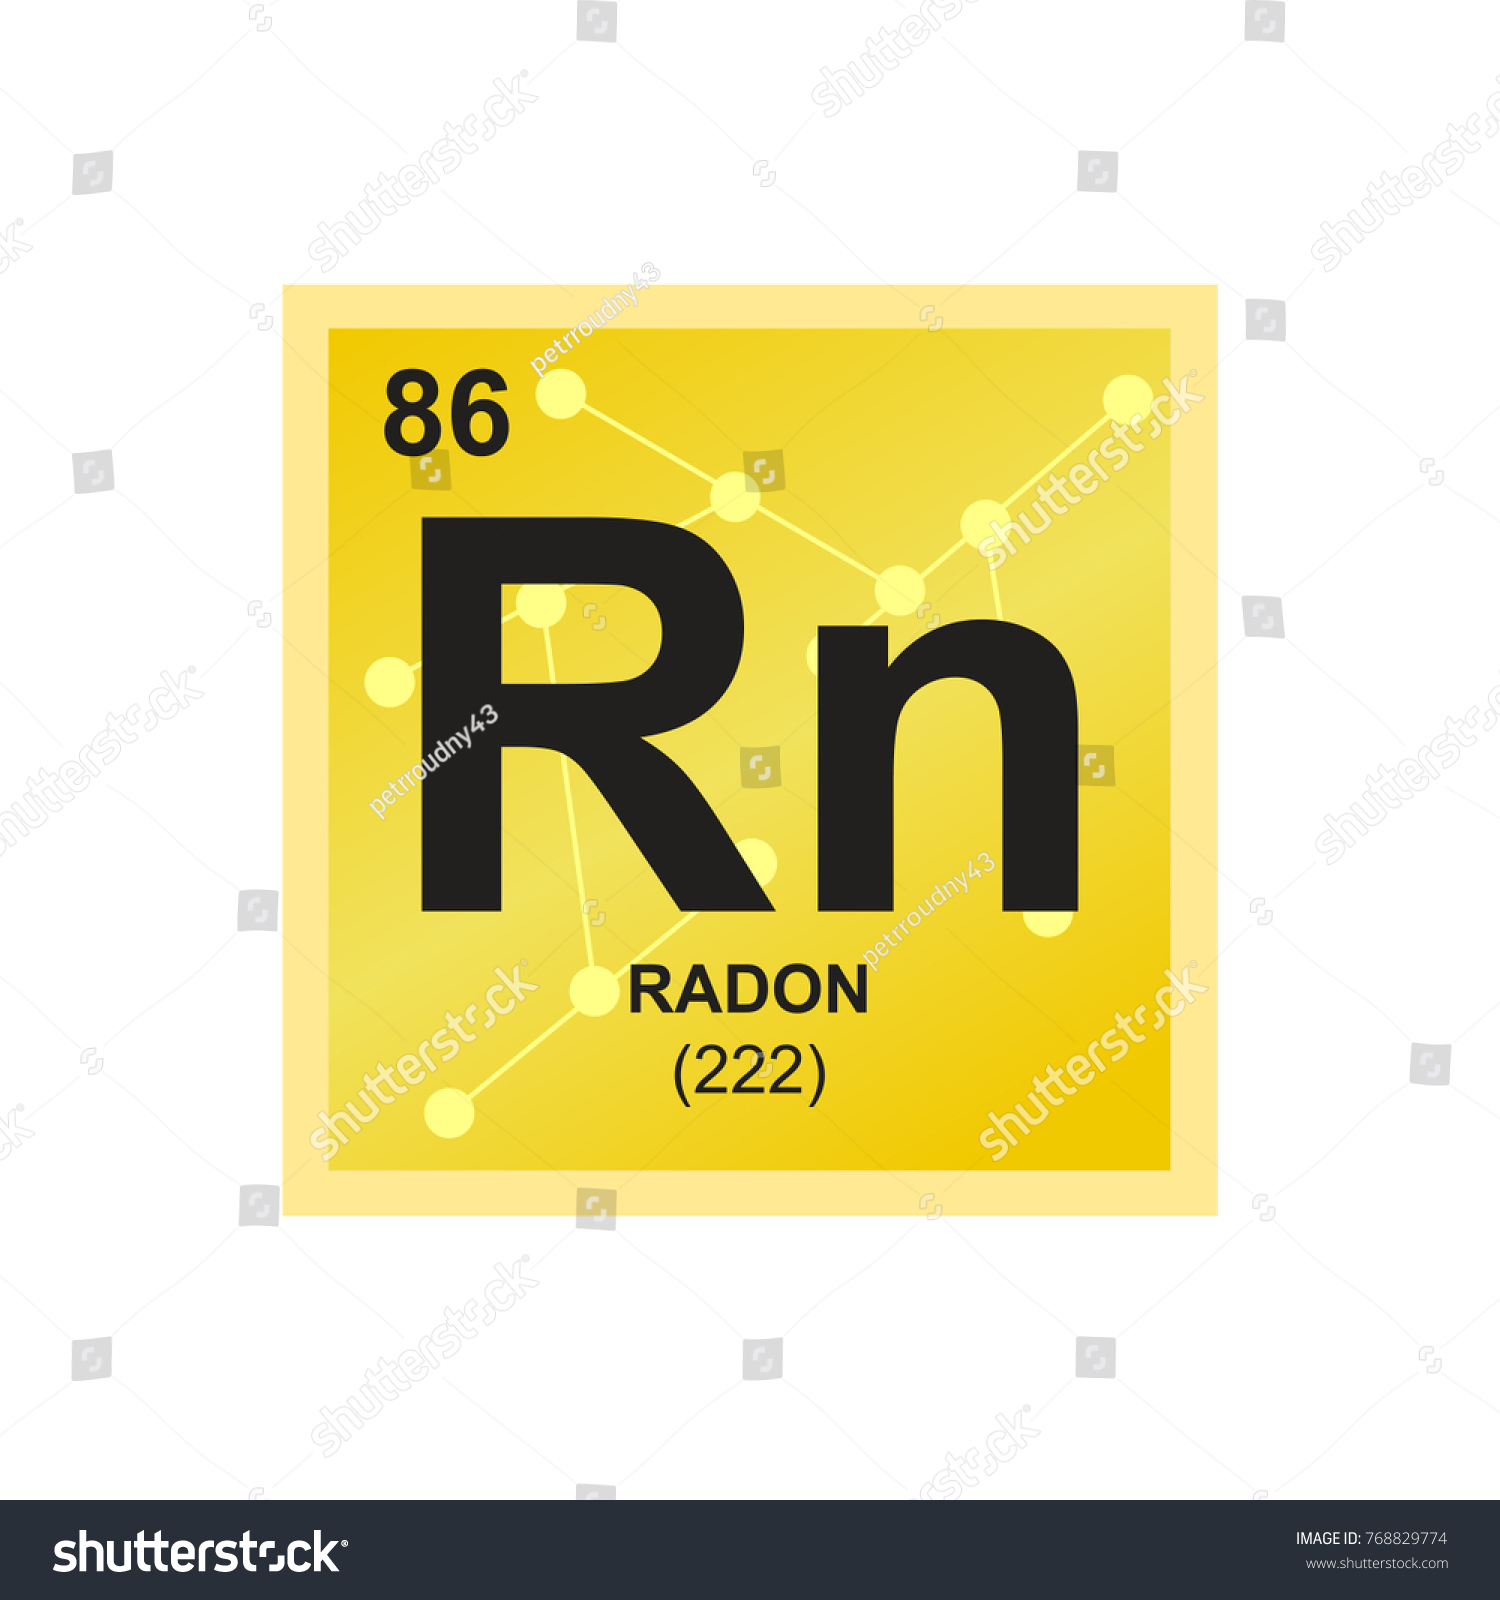 Radon symbol periodic table images periodic table images radon symbol periodic table choice image periodic table images radon periodic table facts image collections periodic gamestrikefo Image collections